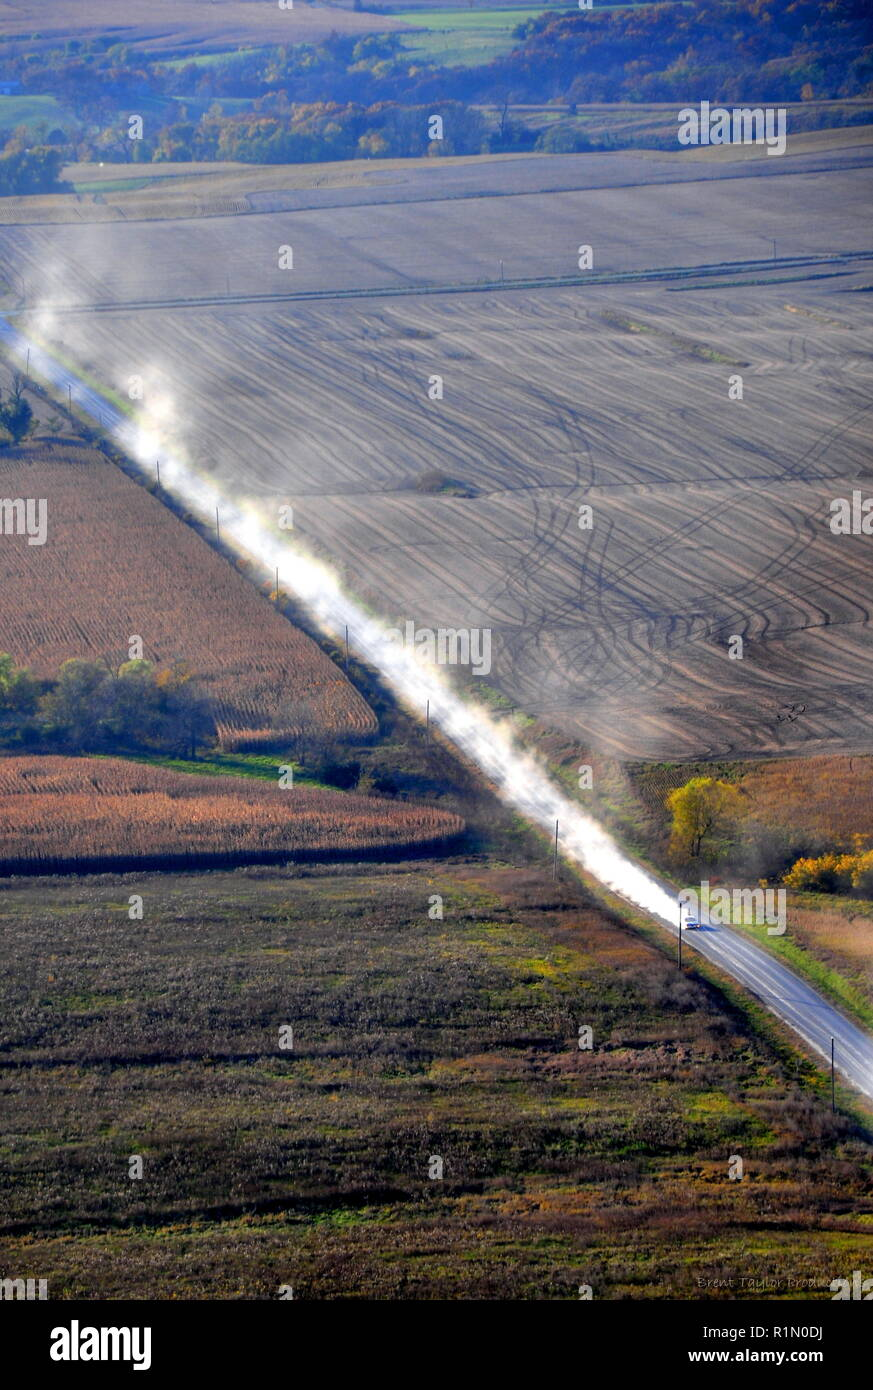 Aerial view of Midwestern farm fields and vehicle on a dusty gravel road - Stock Image